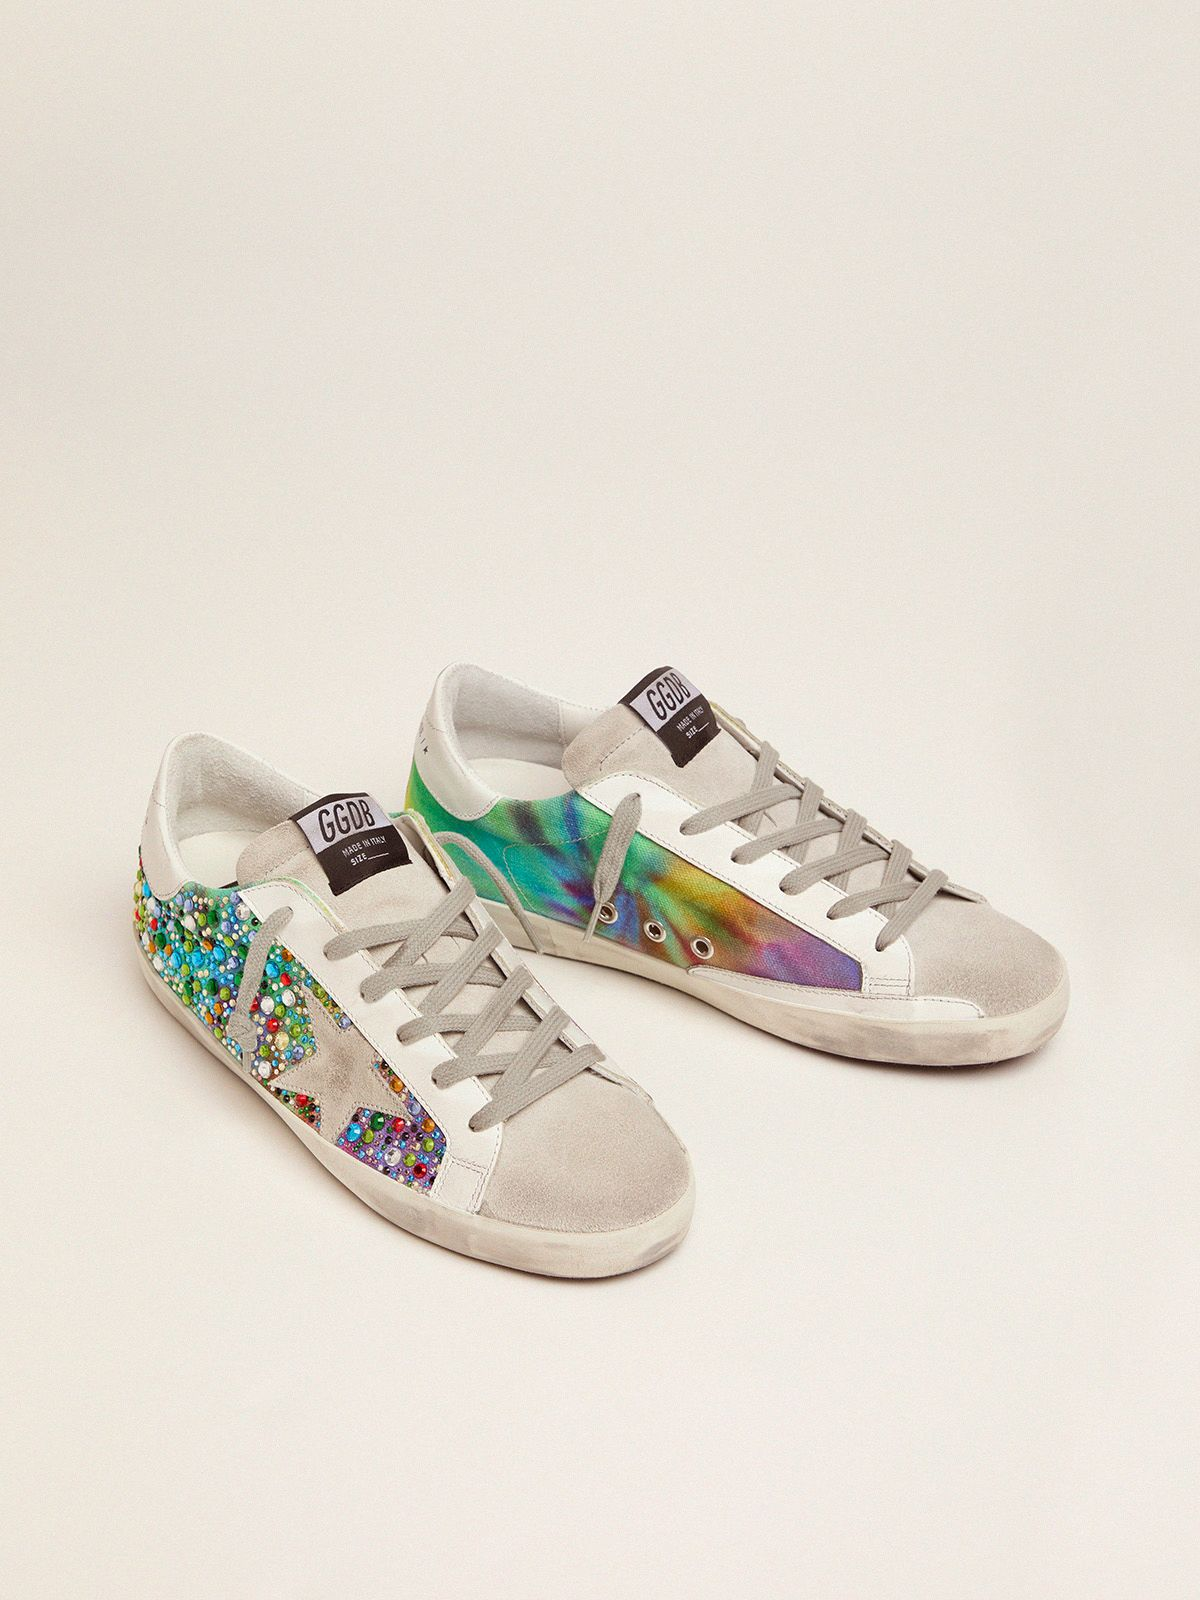 Golden Goose - Super-Star sneakers with rainbow crystals in